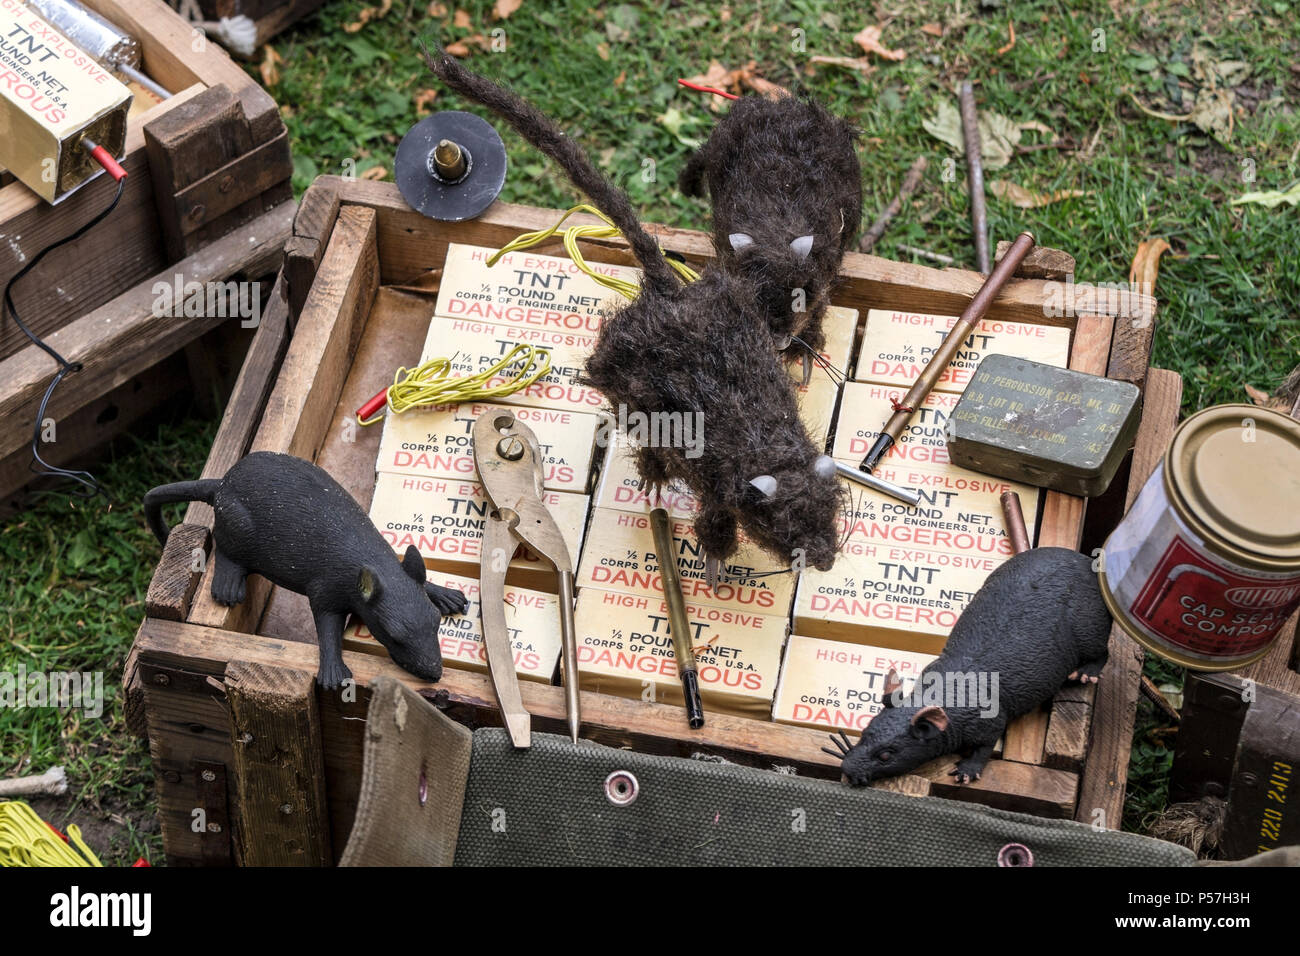 A Box of TNT with Rat Bombs on Top.  Rat Bombs Were Developed by the British Operations Executive in WW2 for Use Against the Germans. - Stock Image